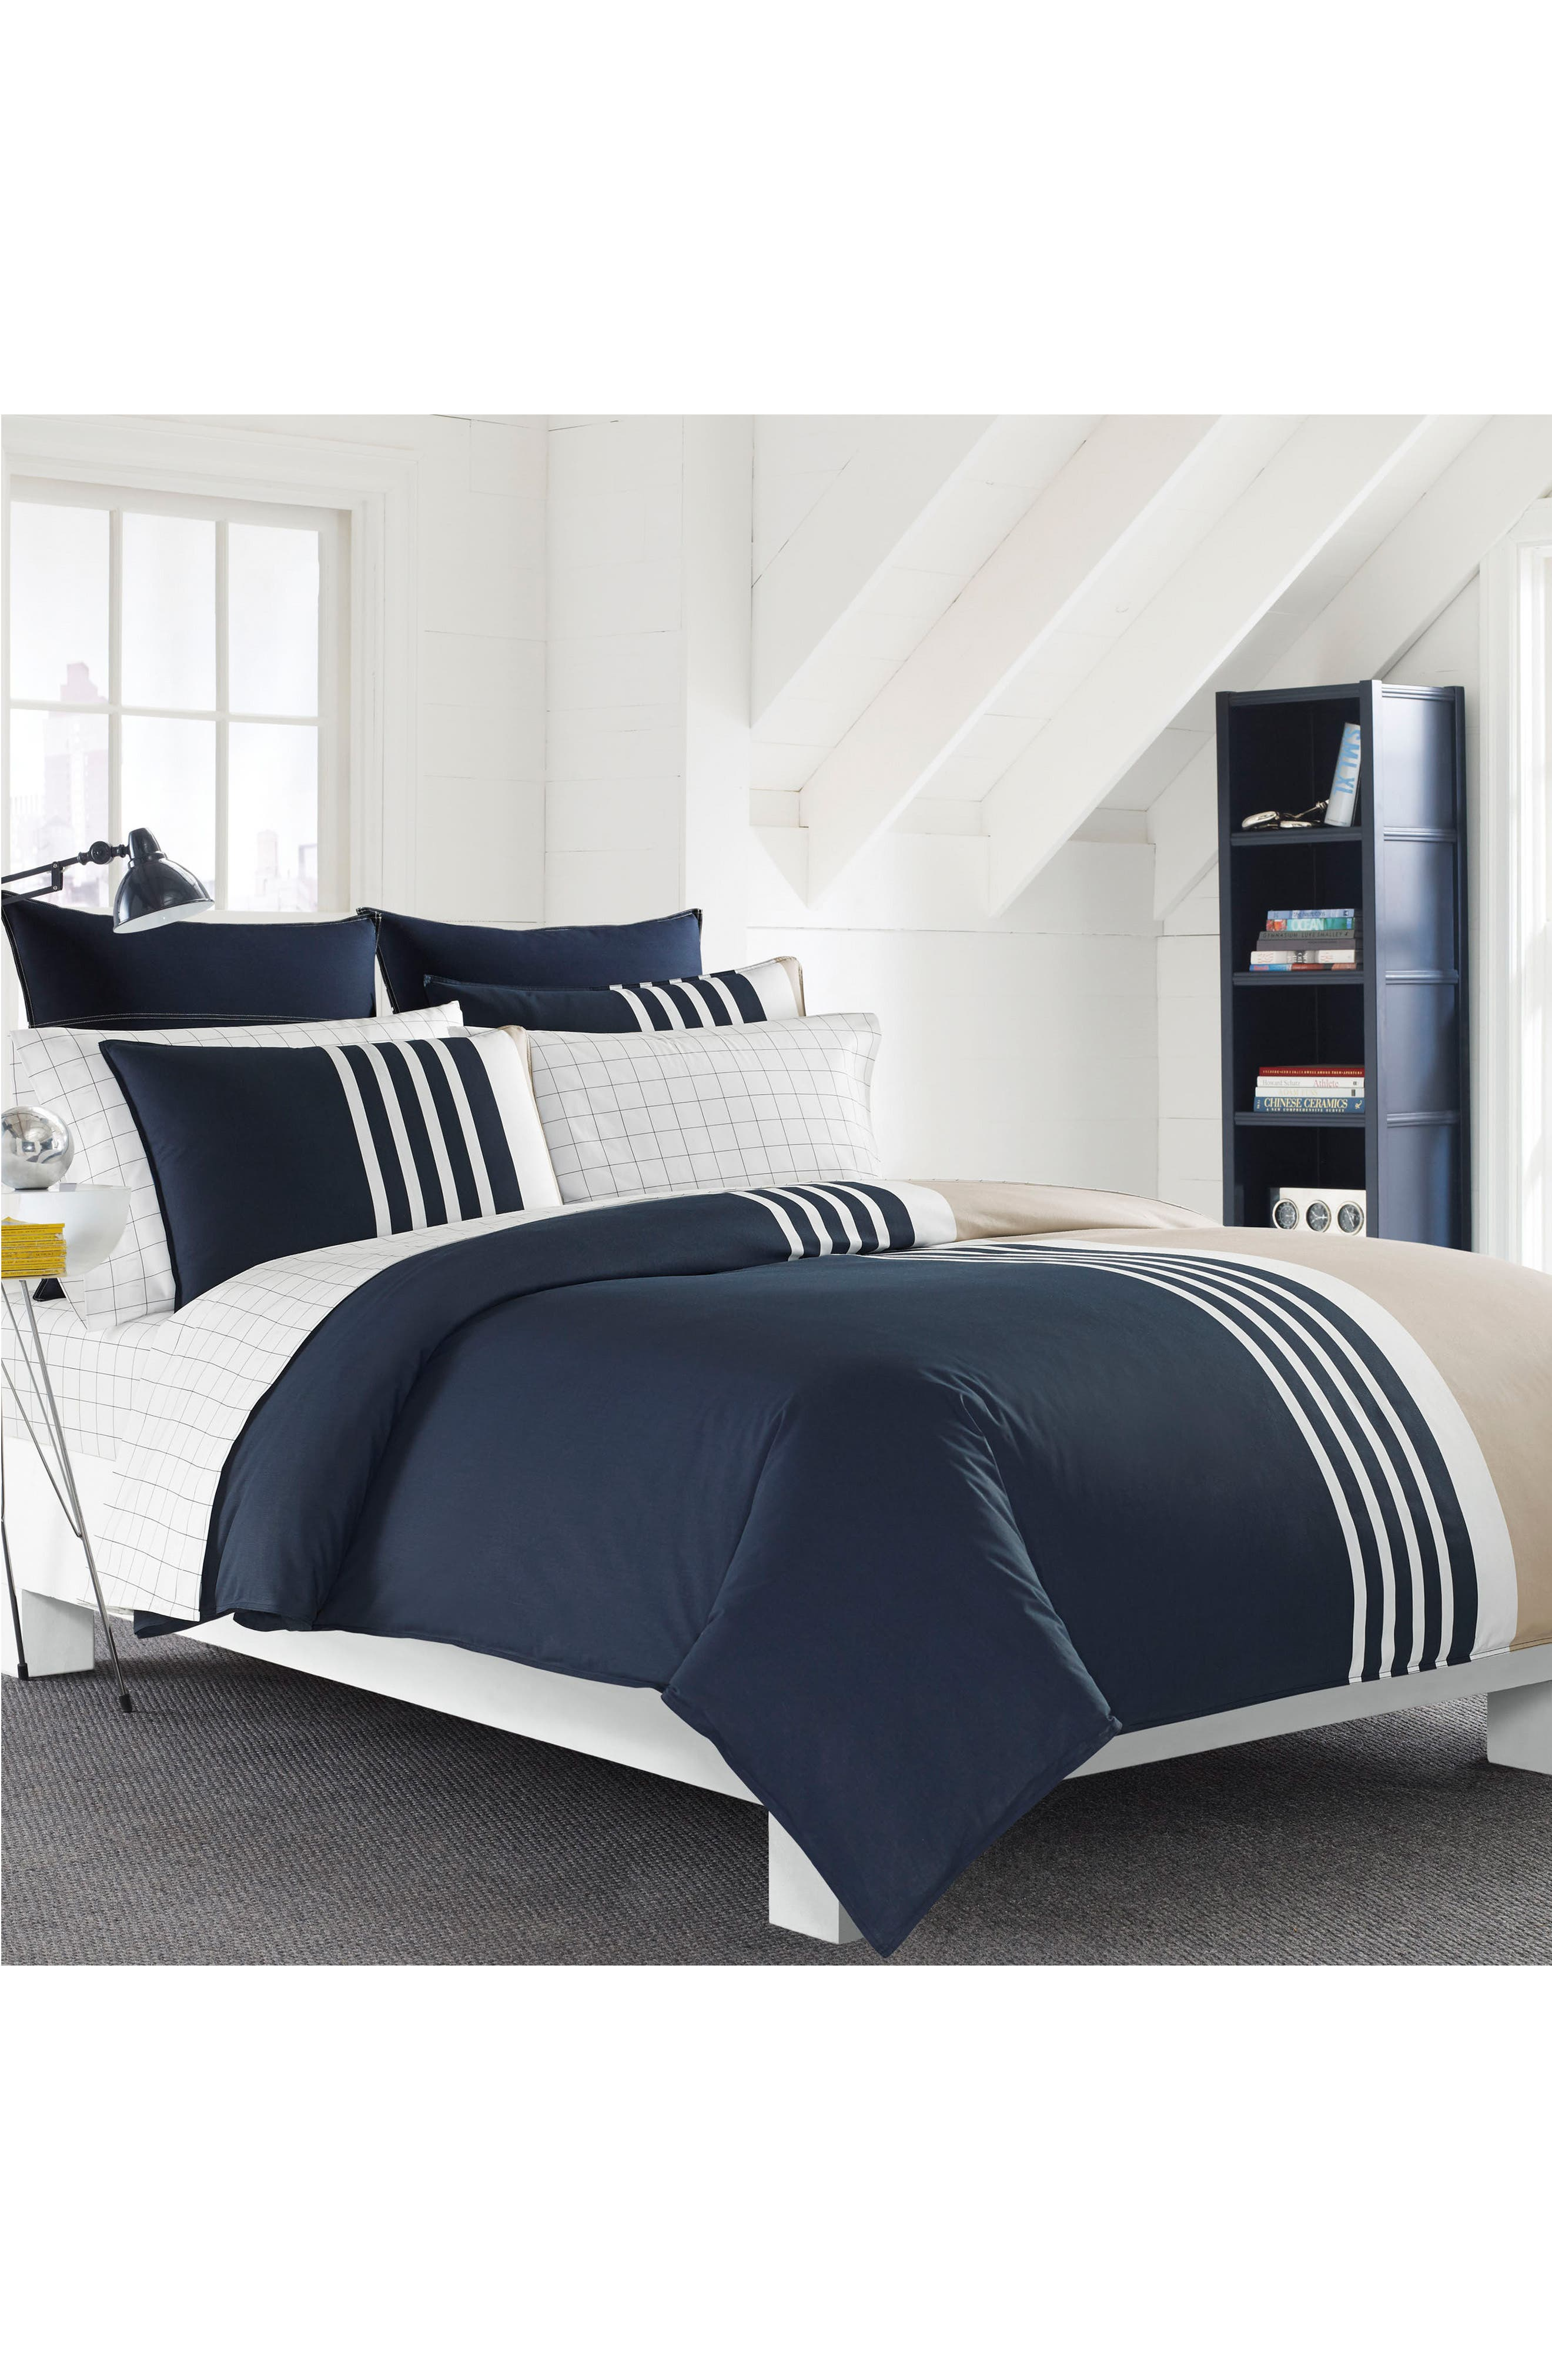 Aport Duvet & Sham Set,                             Main thumbnail 1, color,                             NAVY